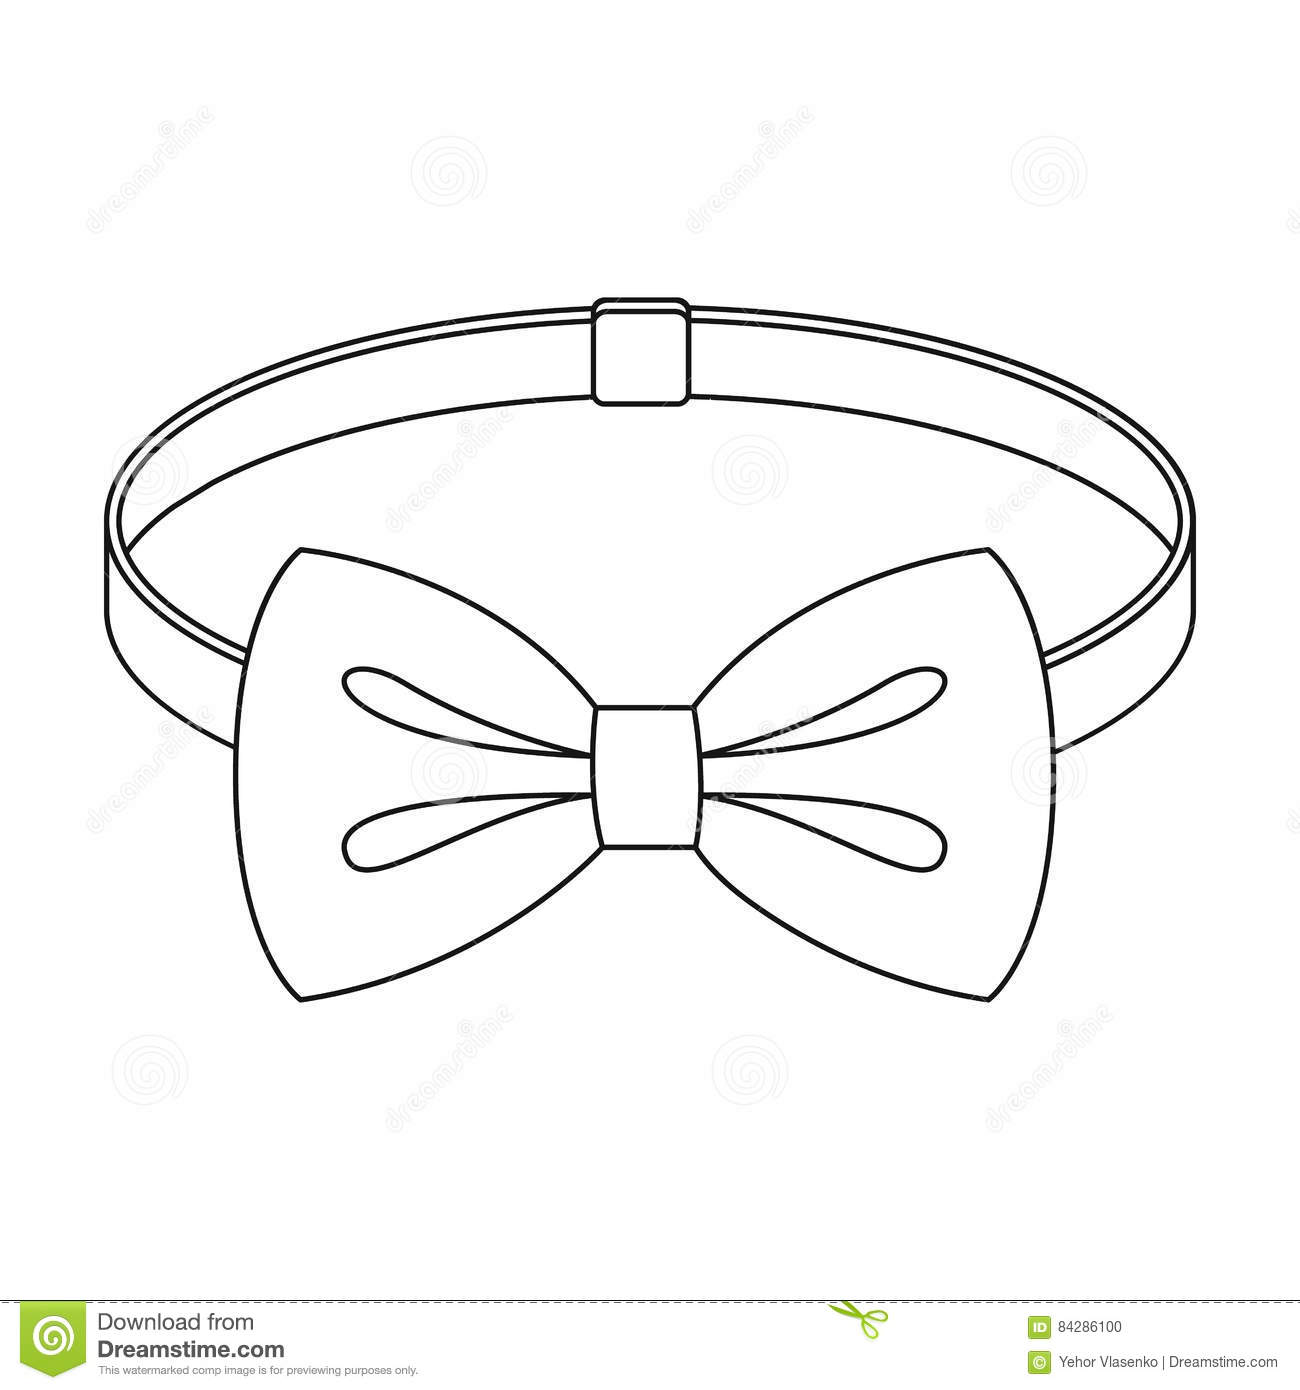 Bow Tie Outline Clipart